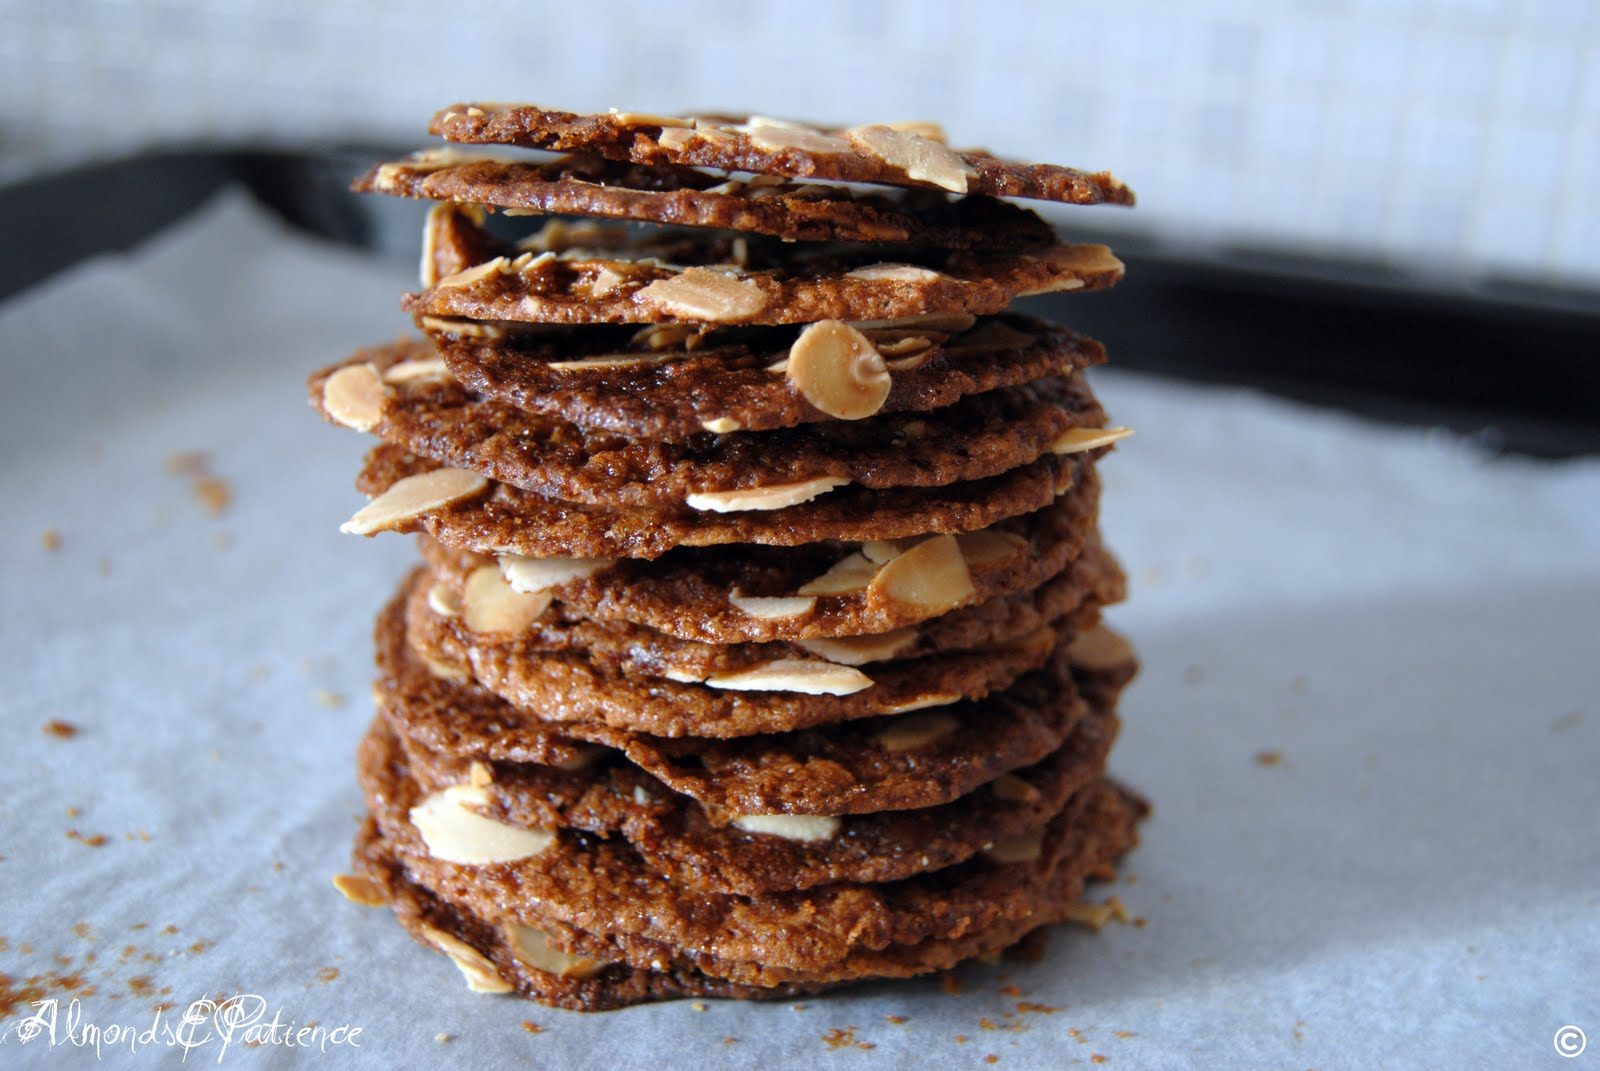 Almonds&Patience: Wafer di mandorle - Almond wafers